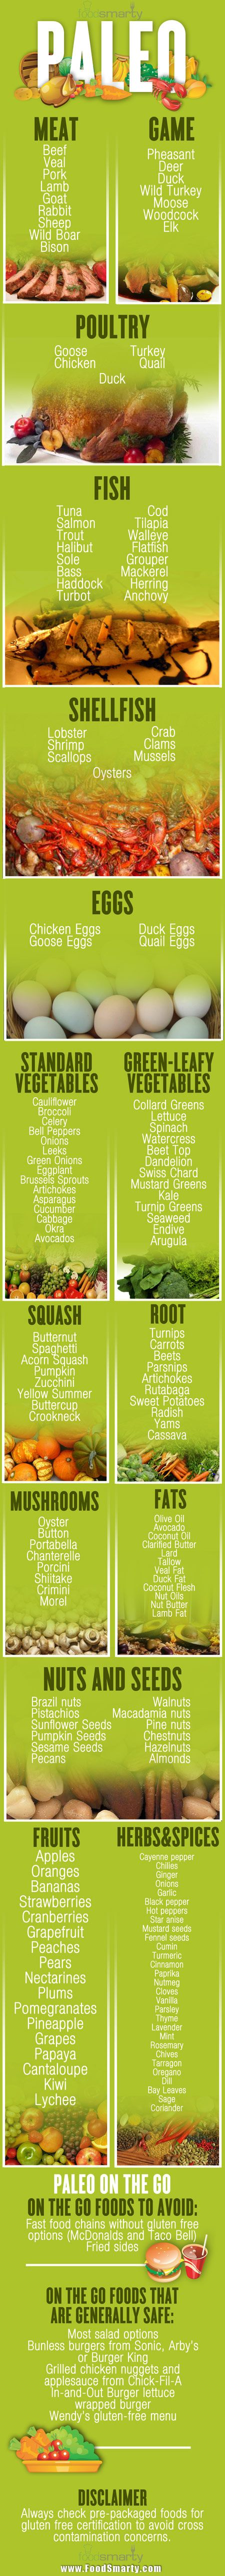 Paleo Diet Info Graphic - Quick Reference Card